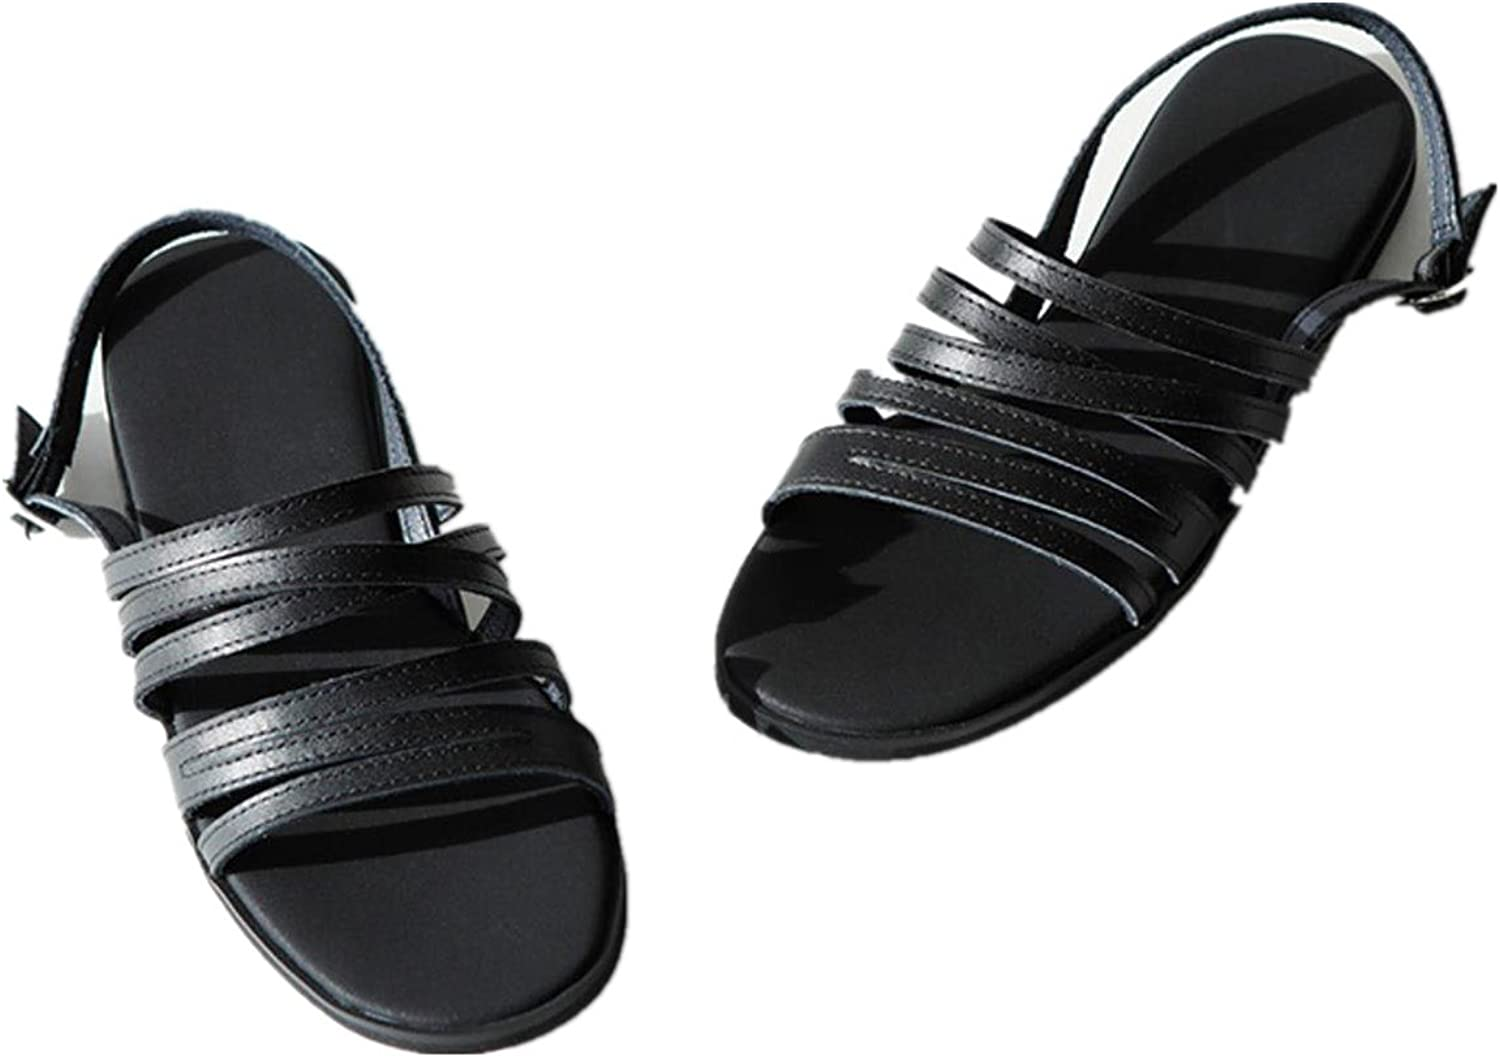 Ugly Summer black flat sandals ladies shoes leather open toe comfortable simple Rome shoes flat shoes